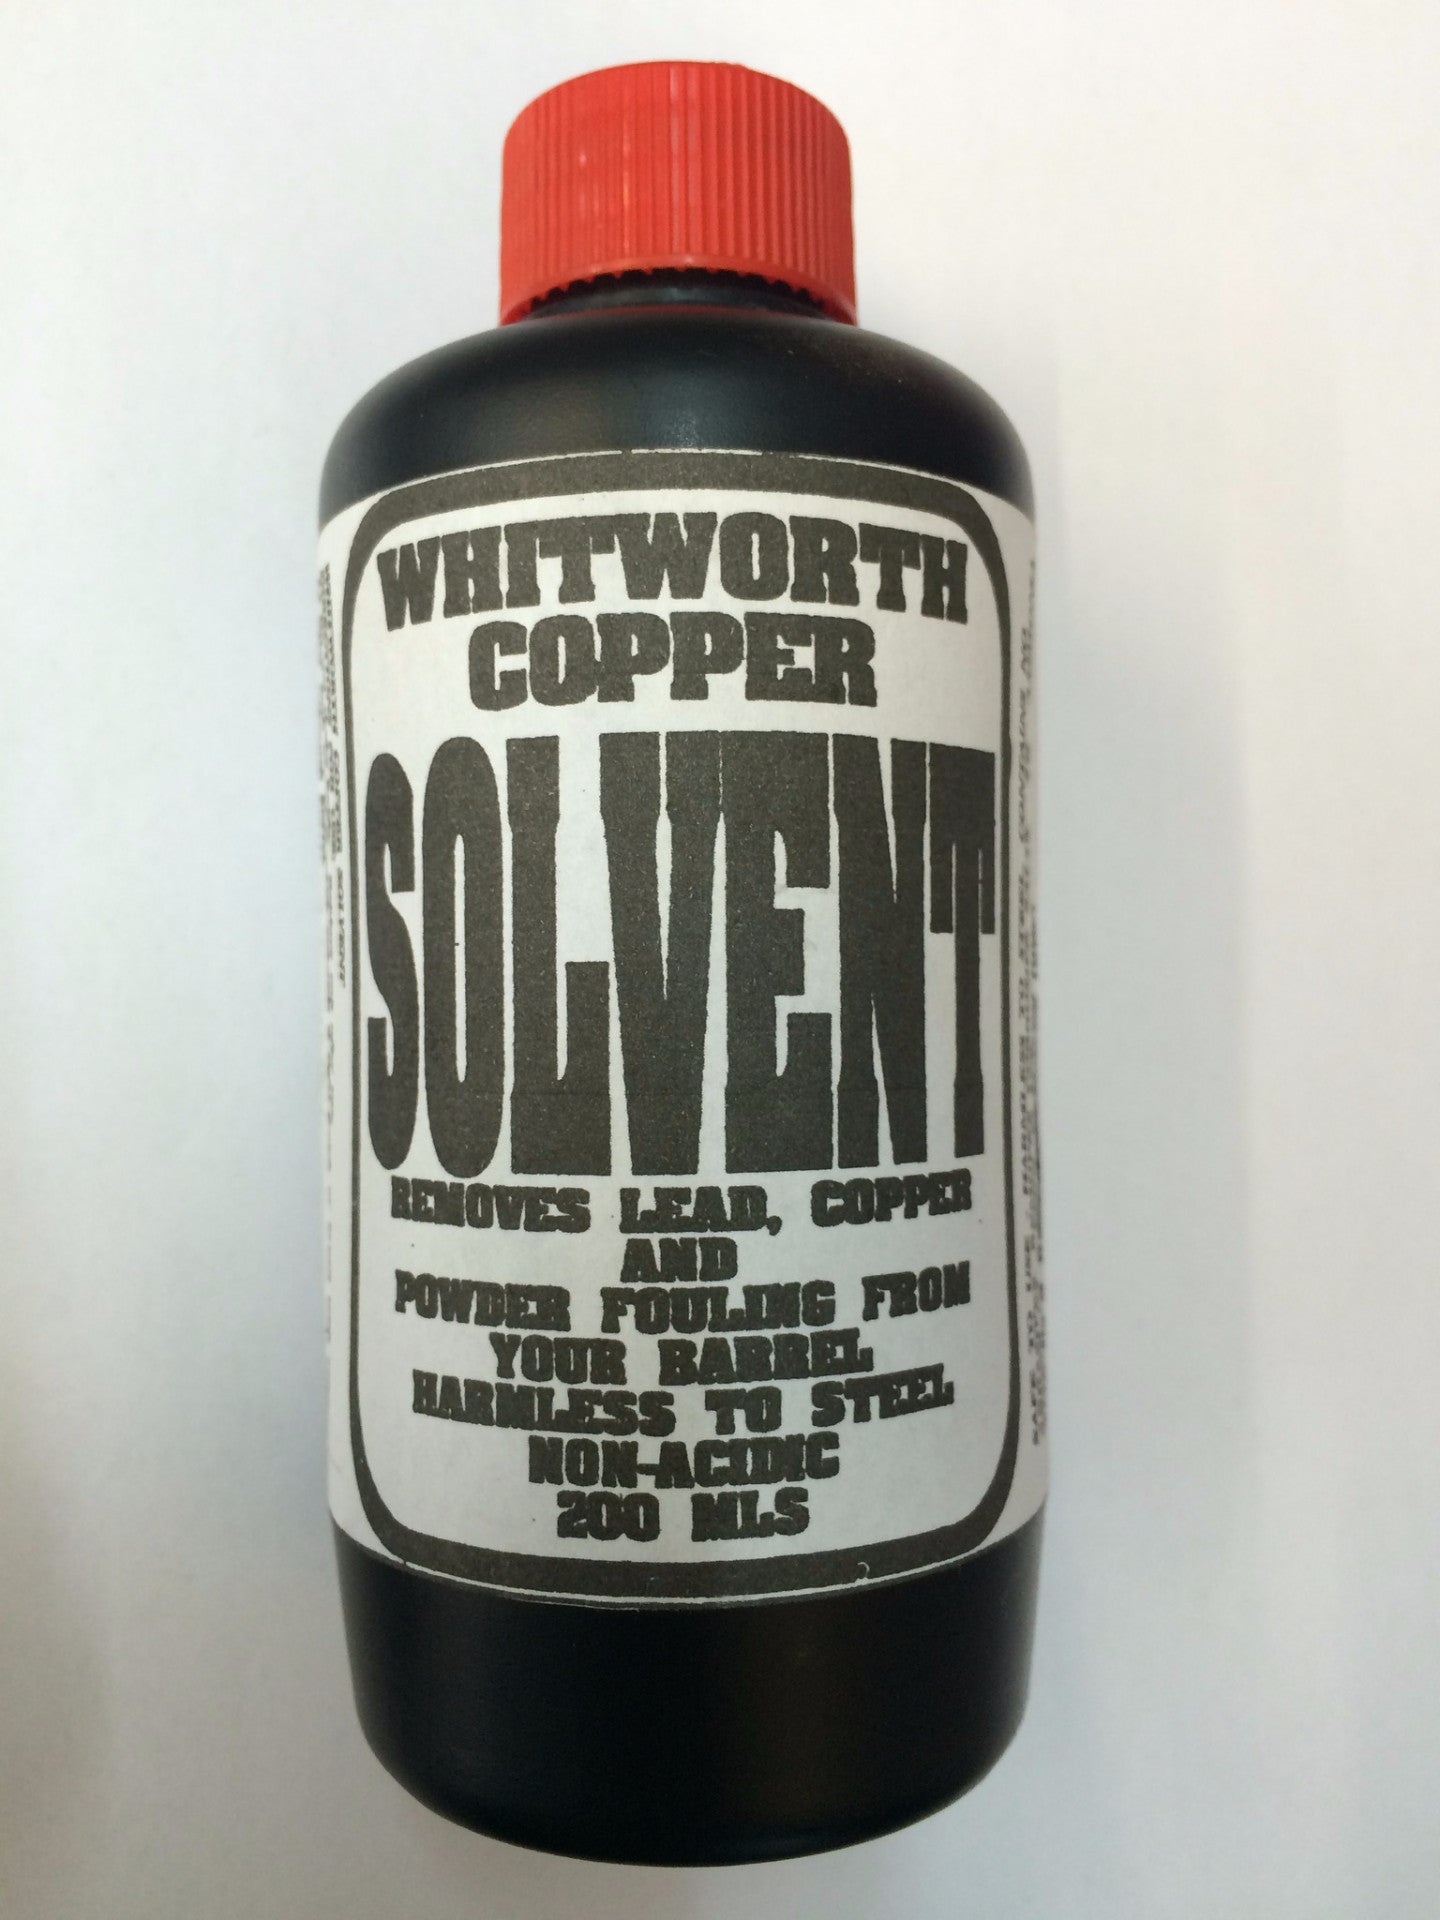 Whitworth Copper Solvent (200ml)